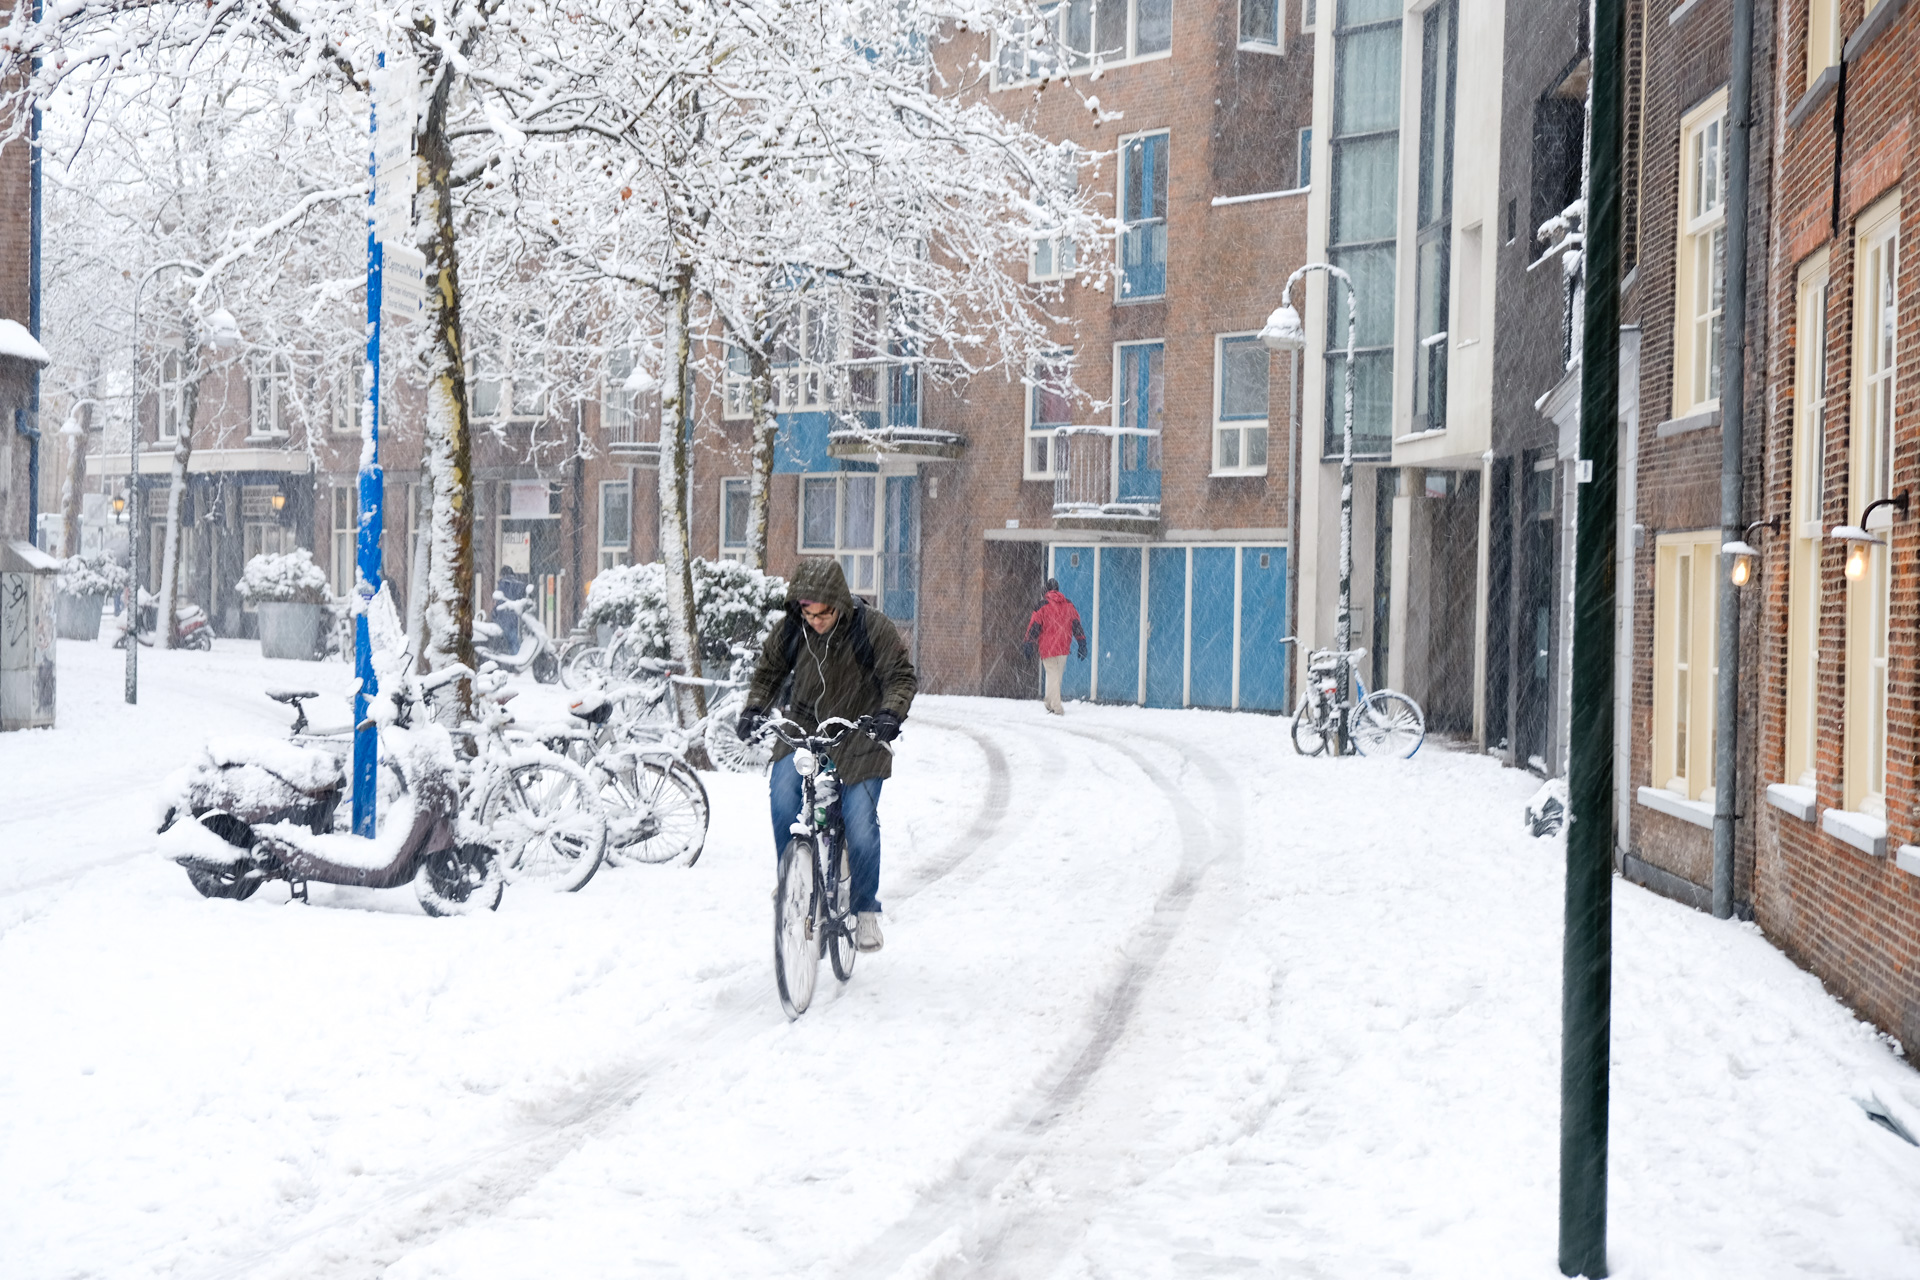 Riding a bike while it's snowing